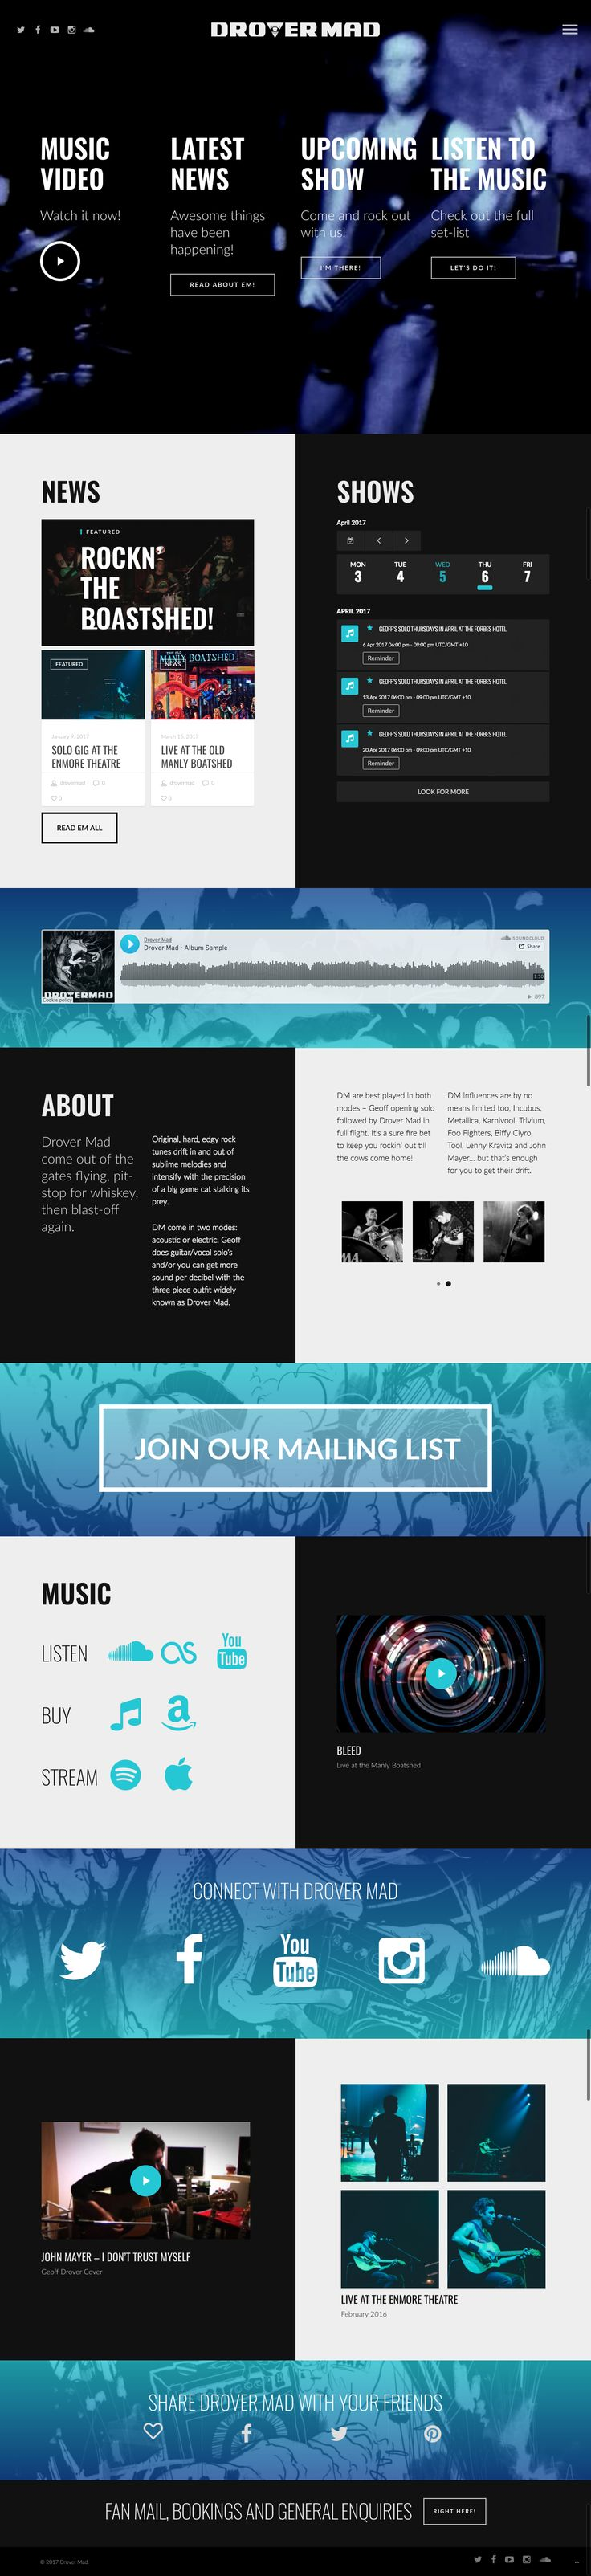 One page responsive musician website with blog, gig calendar, listen and buy music links, embedded audio and video #website #mybandwebsite #responsive #wordpress http://kore.digital